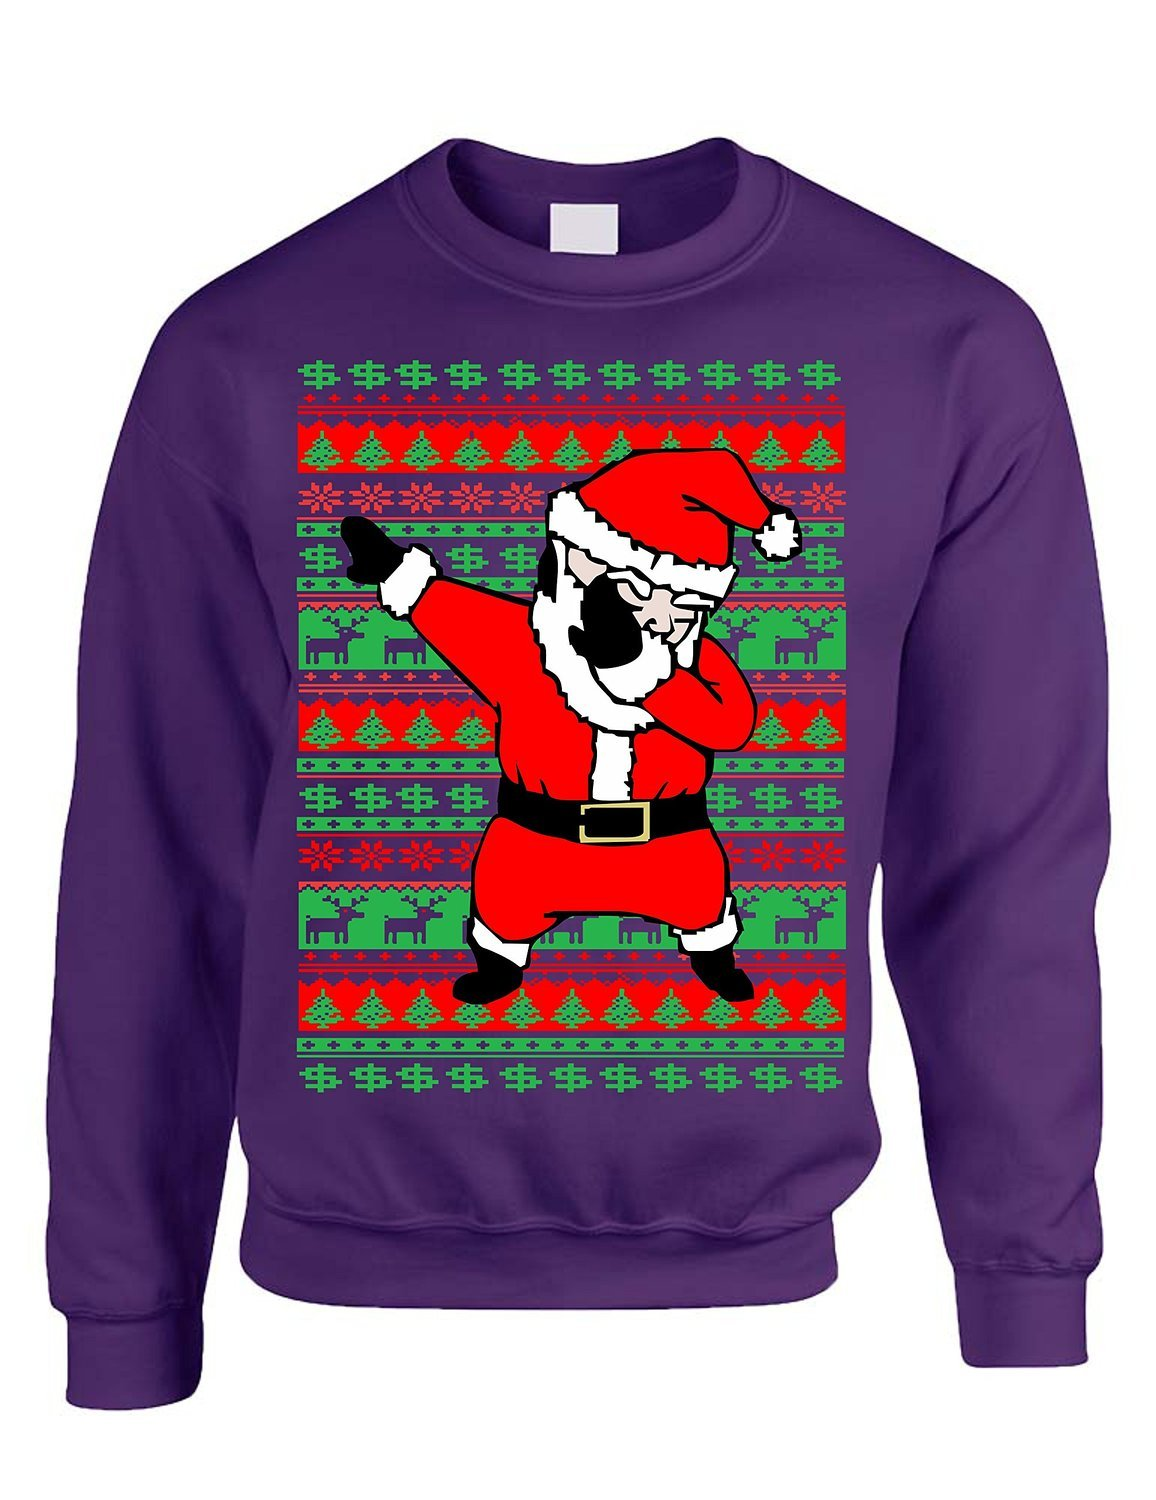 Allntrends Adult Crewneck Dabbing Santa Ugly Christmas Sweater Bella Show